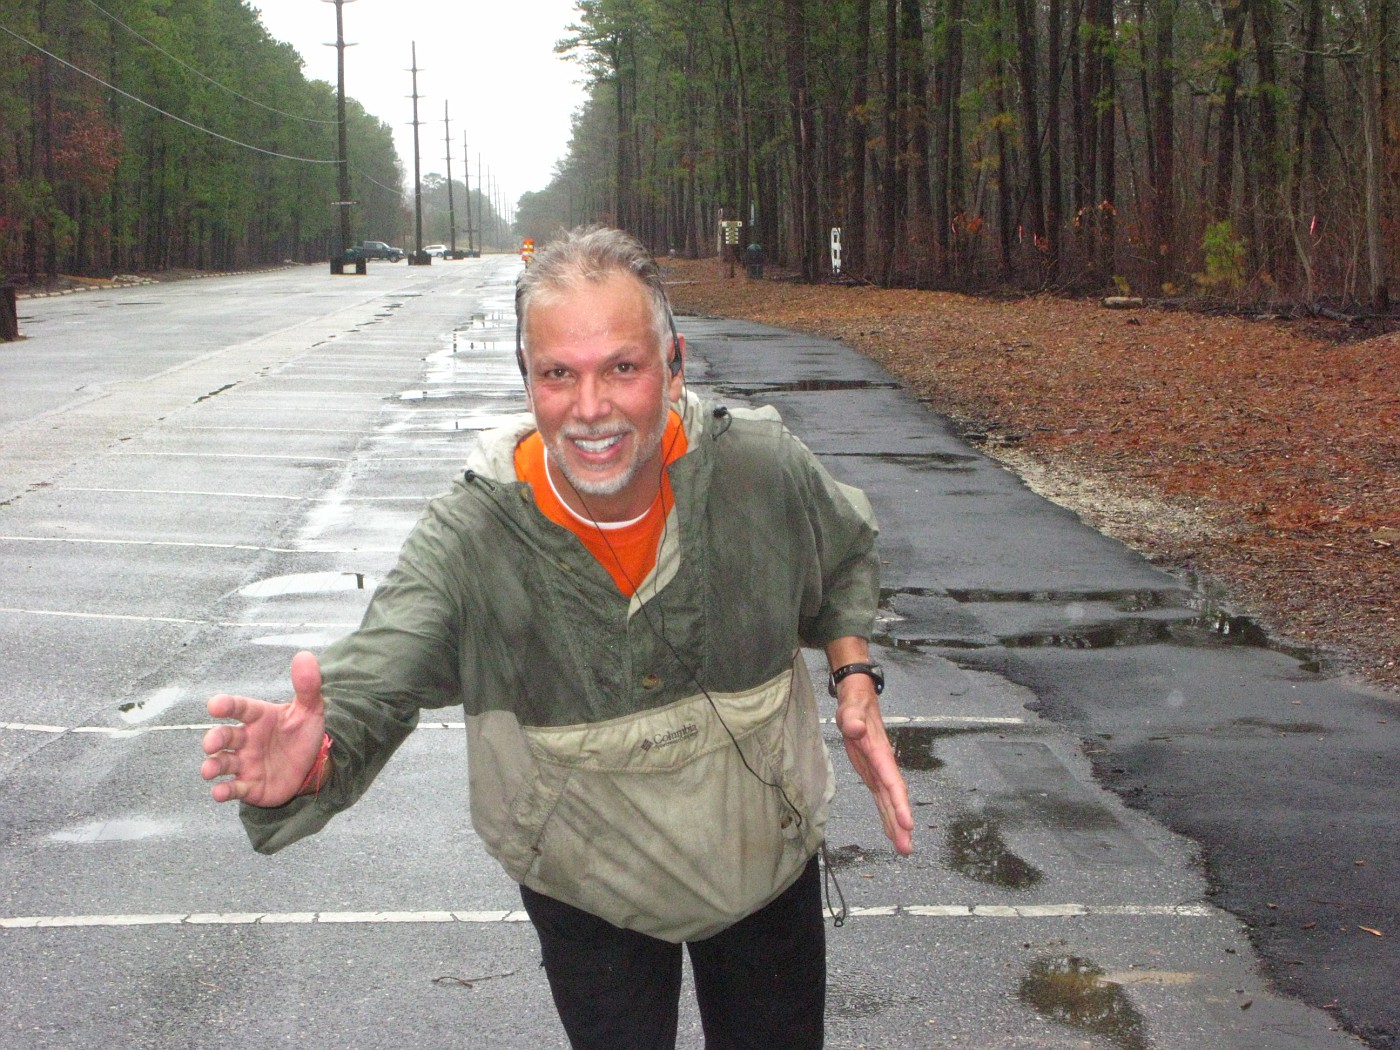 Running Solo in the Rain at the Park 3-29-09